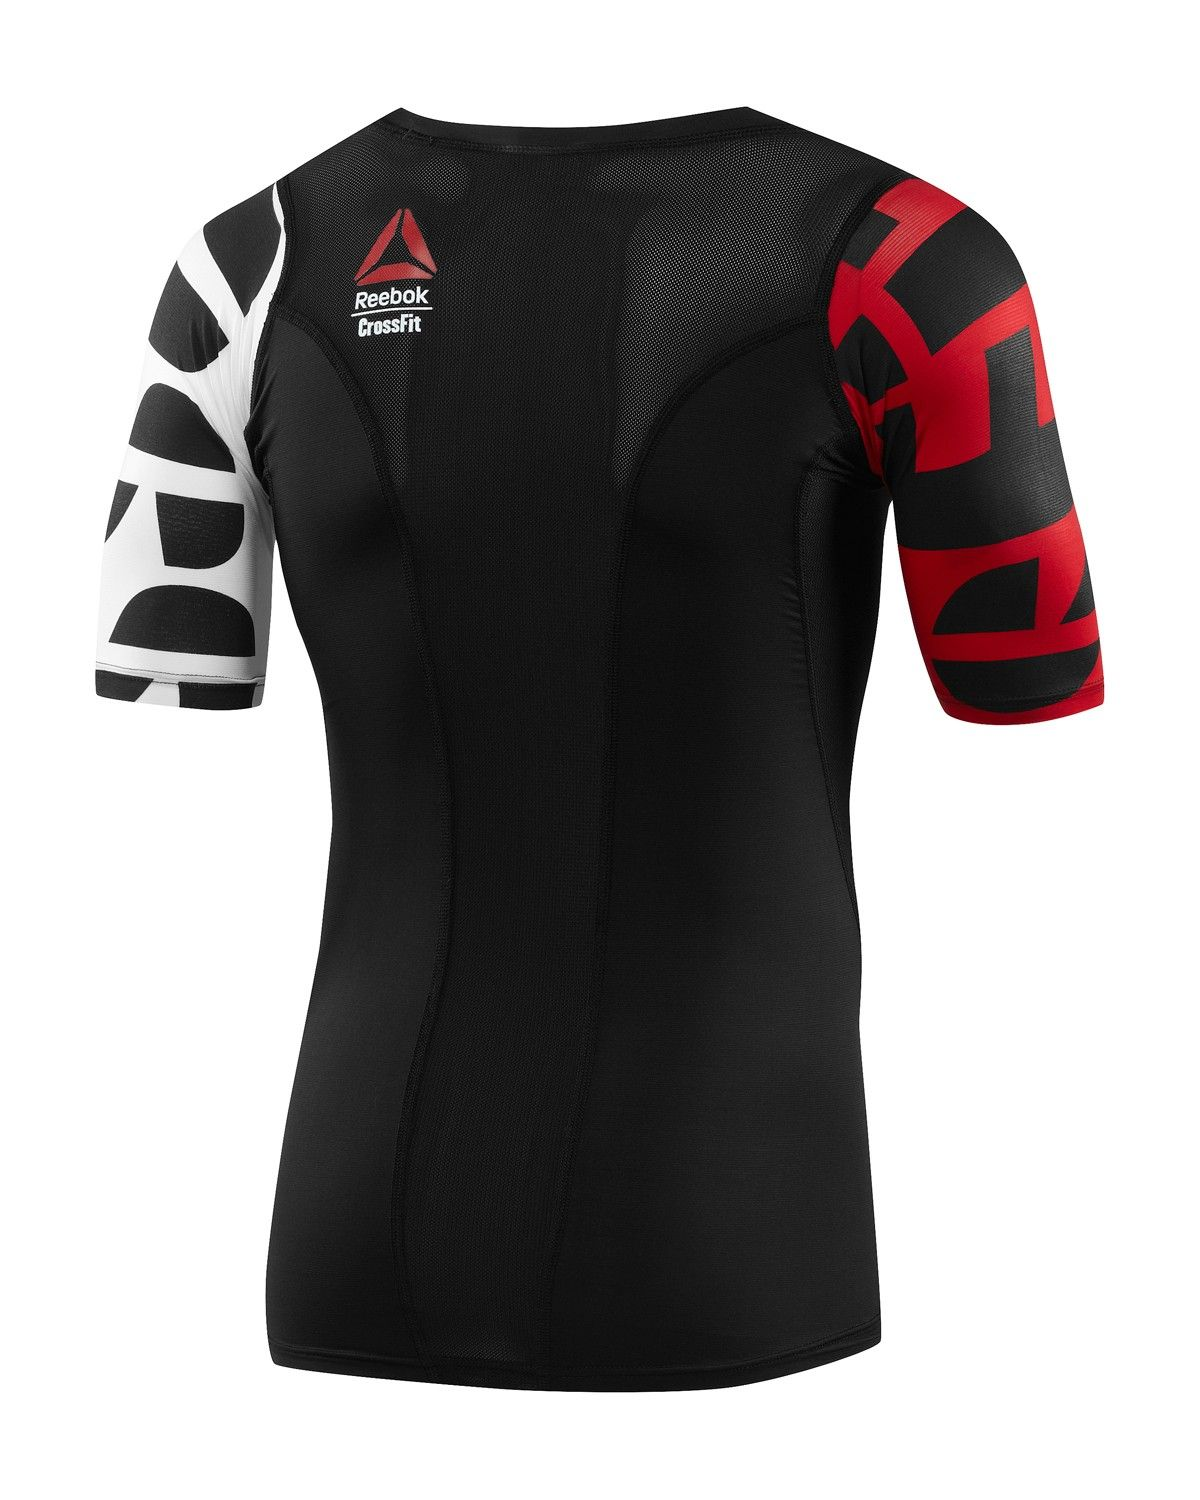 Fitness Clothes Buy Online: CrossFit HQ Store- Lightweight S/S Compression Top